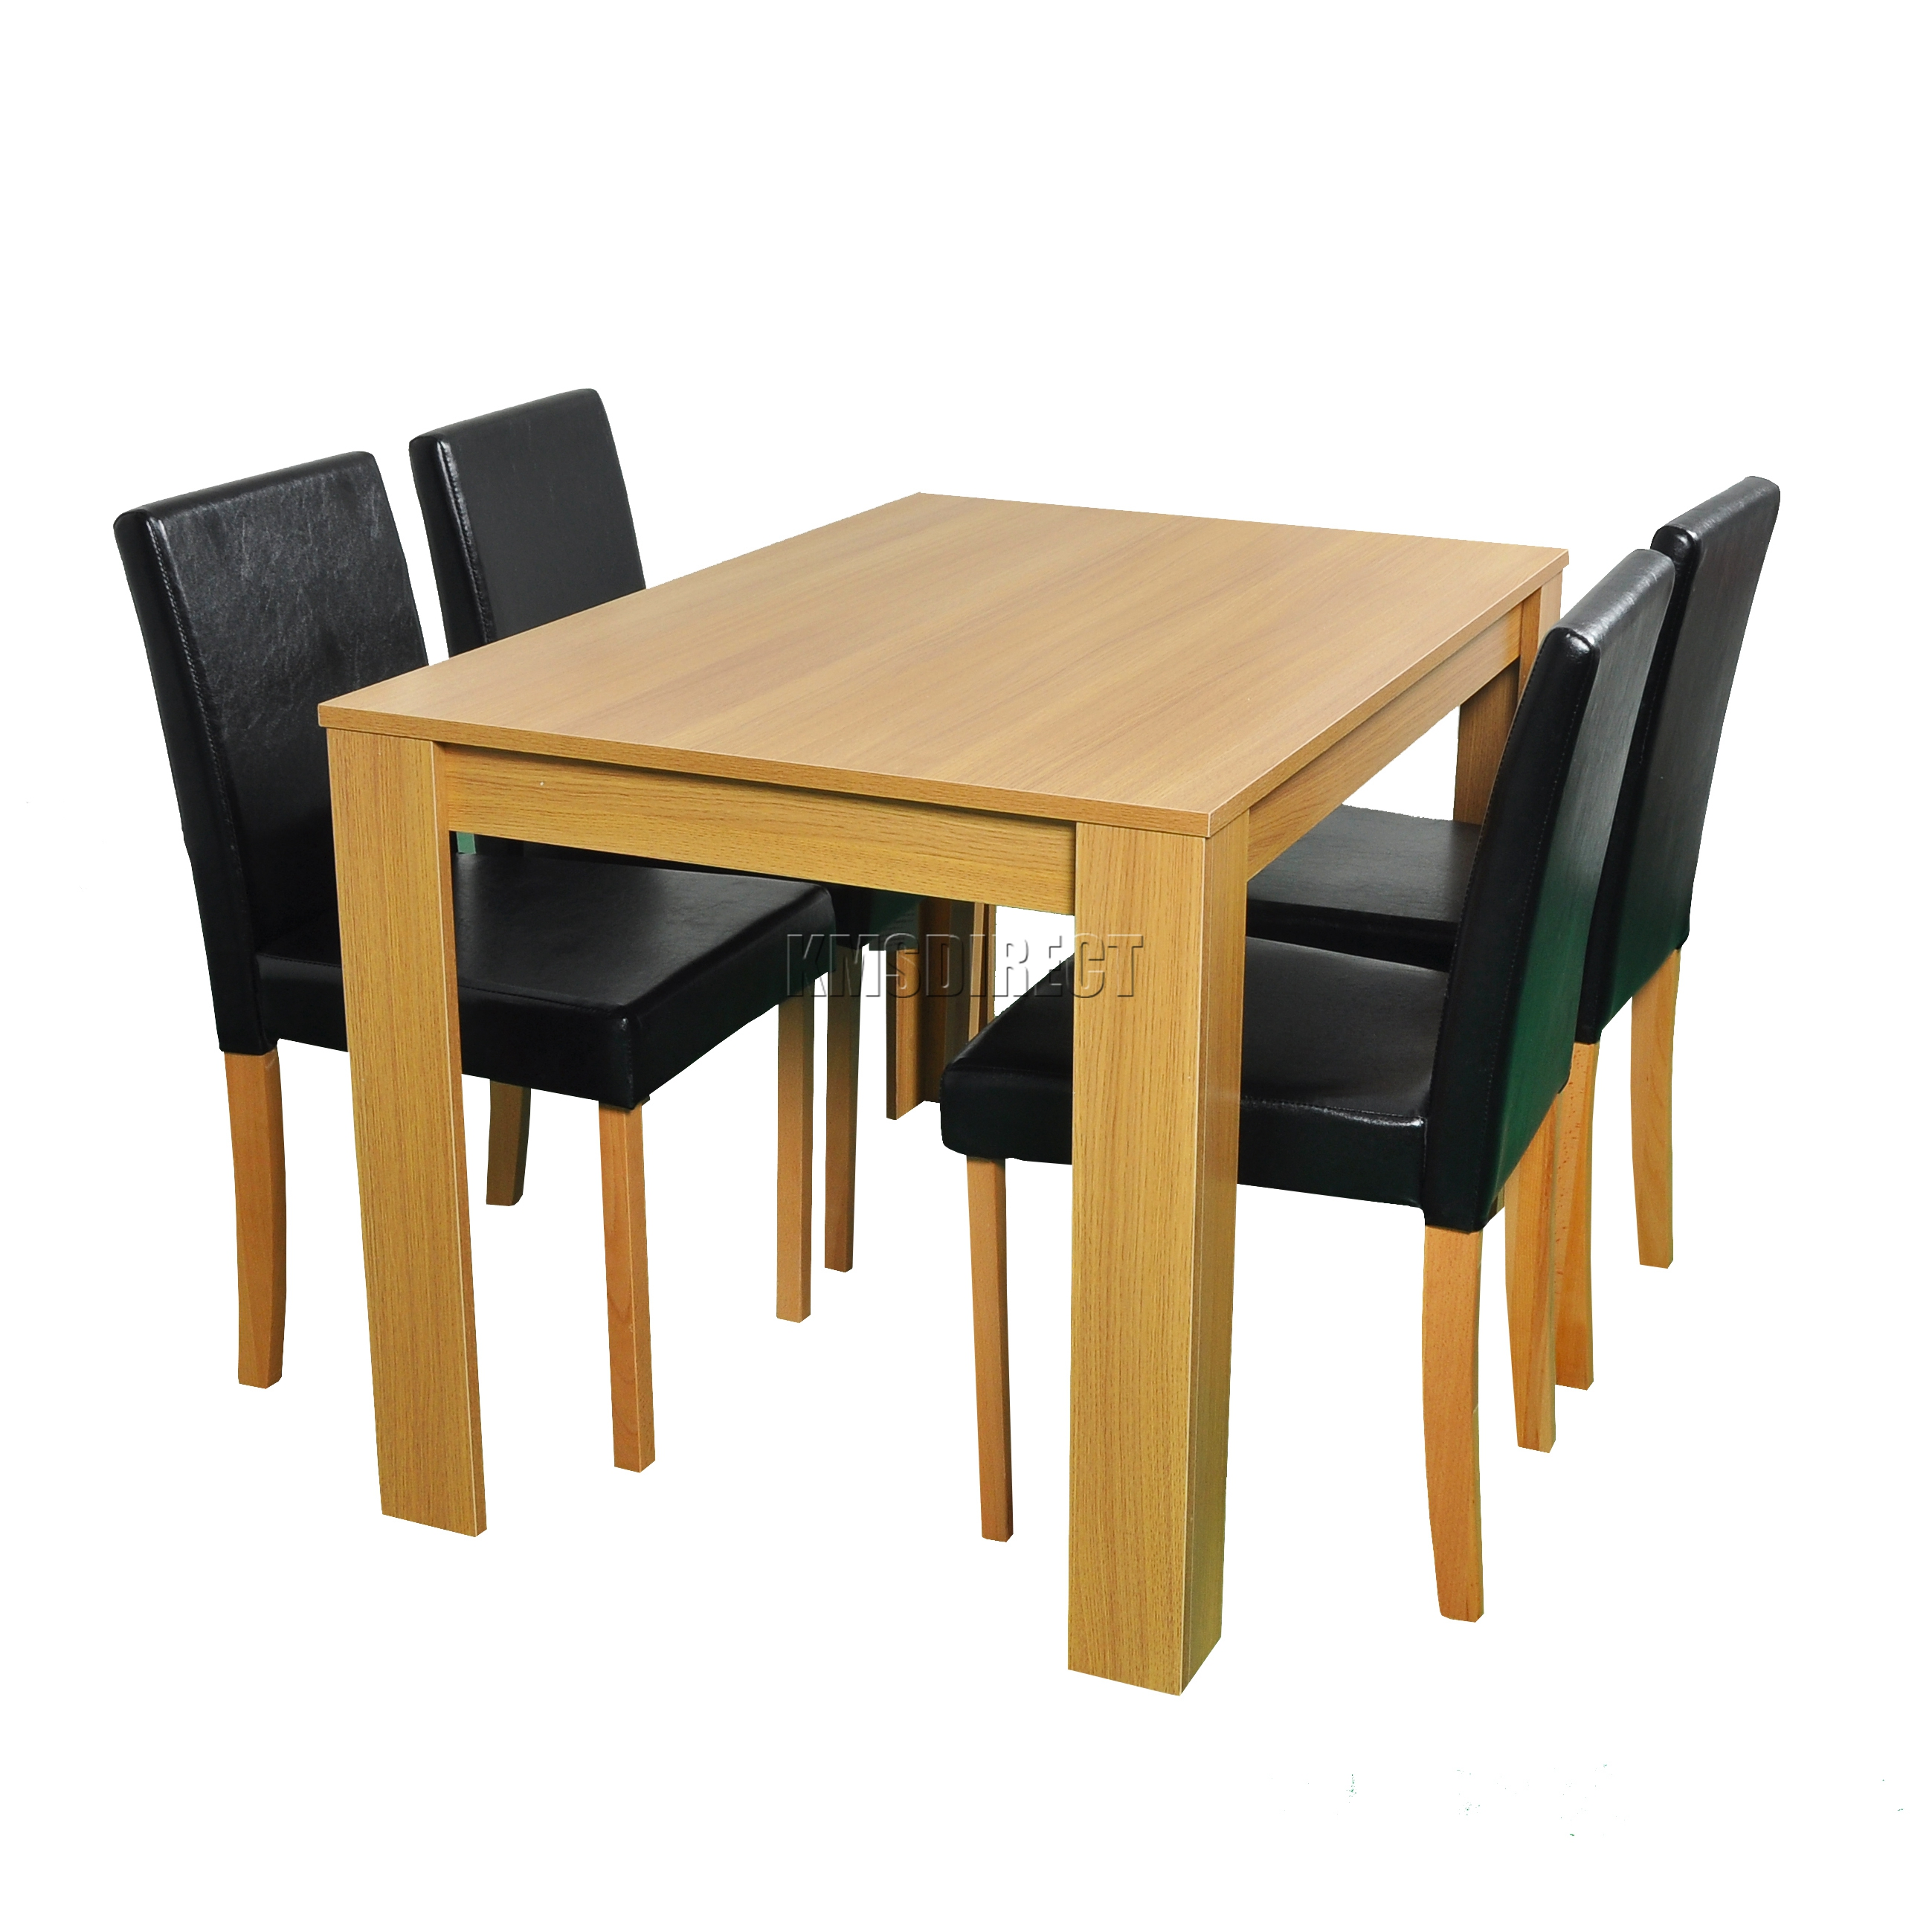 WestWood Wooden Dining Table And 4 PU Faux Leather Chairs